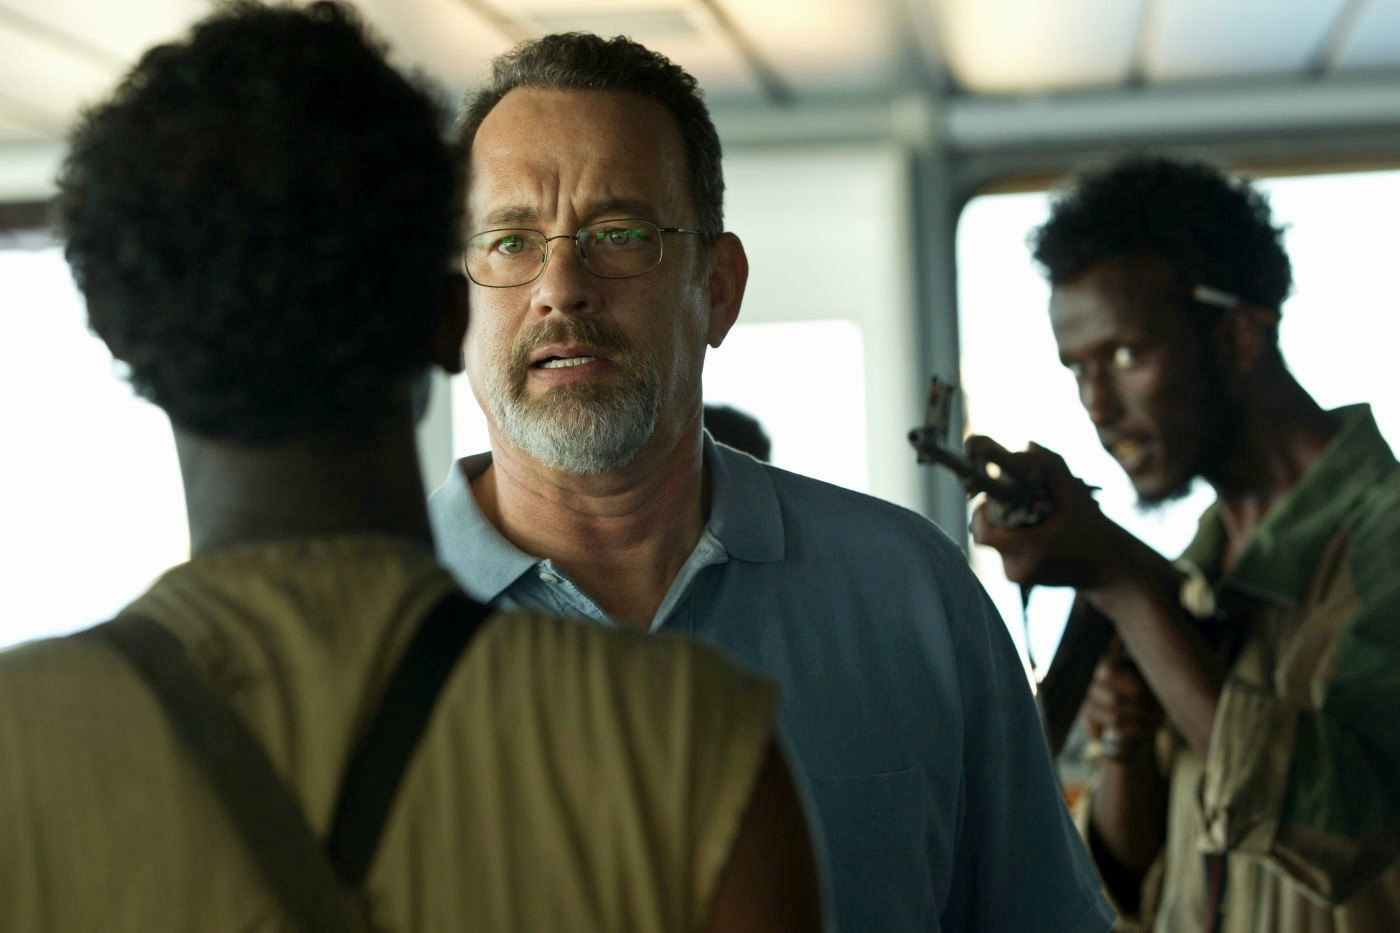 Tom Hanks, Mahat M. Ali